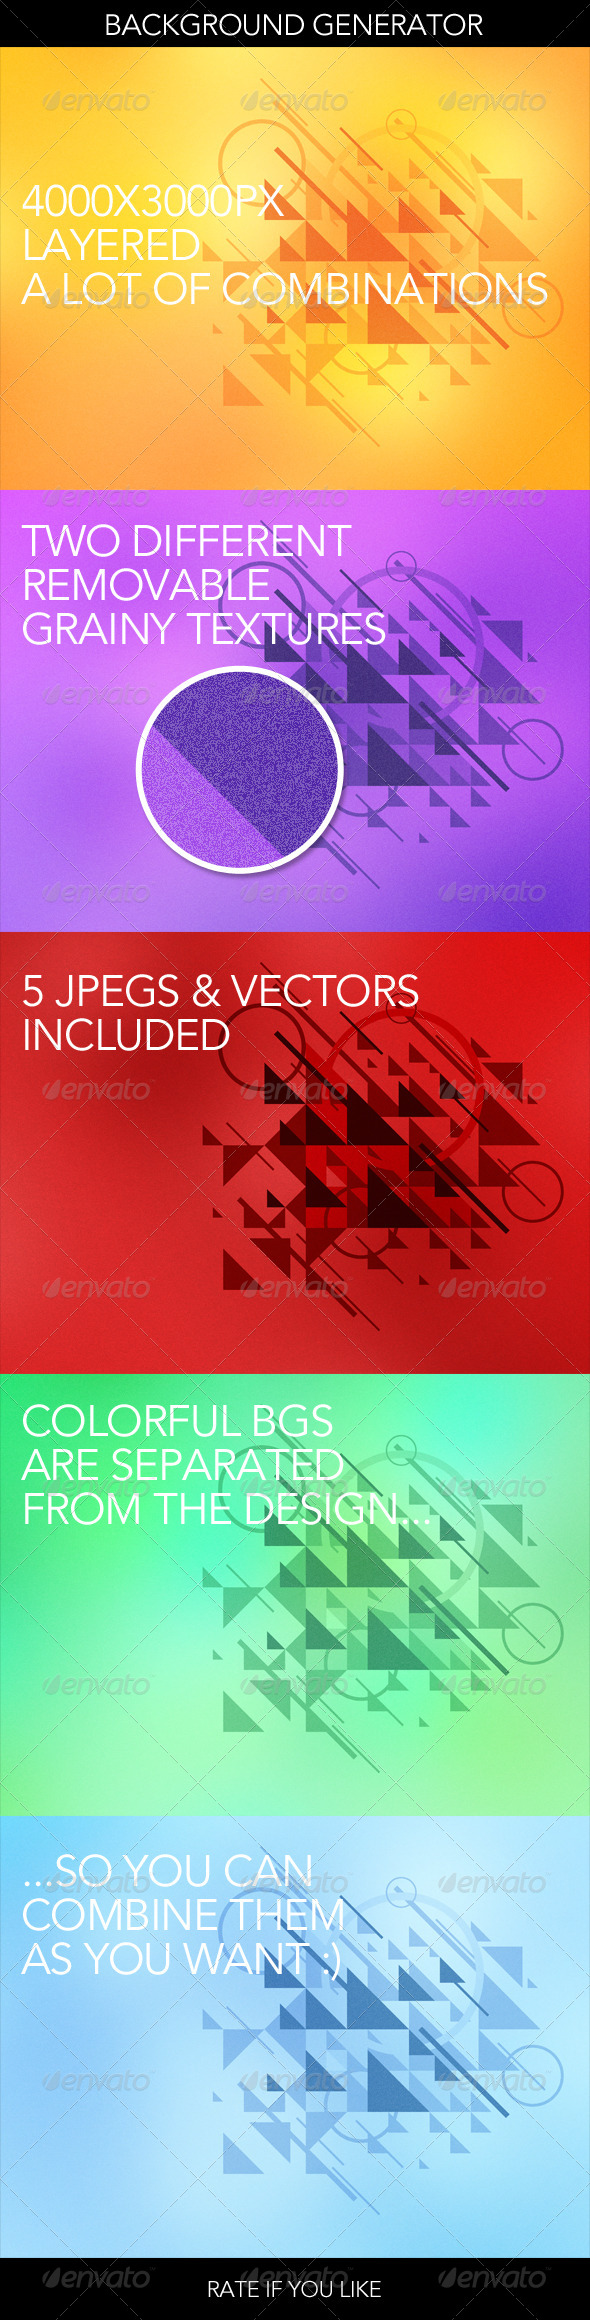 GraphicRiver Abstract Background Graphics Generator 4164053